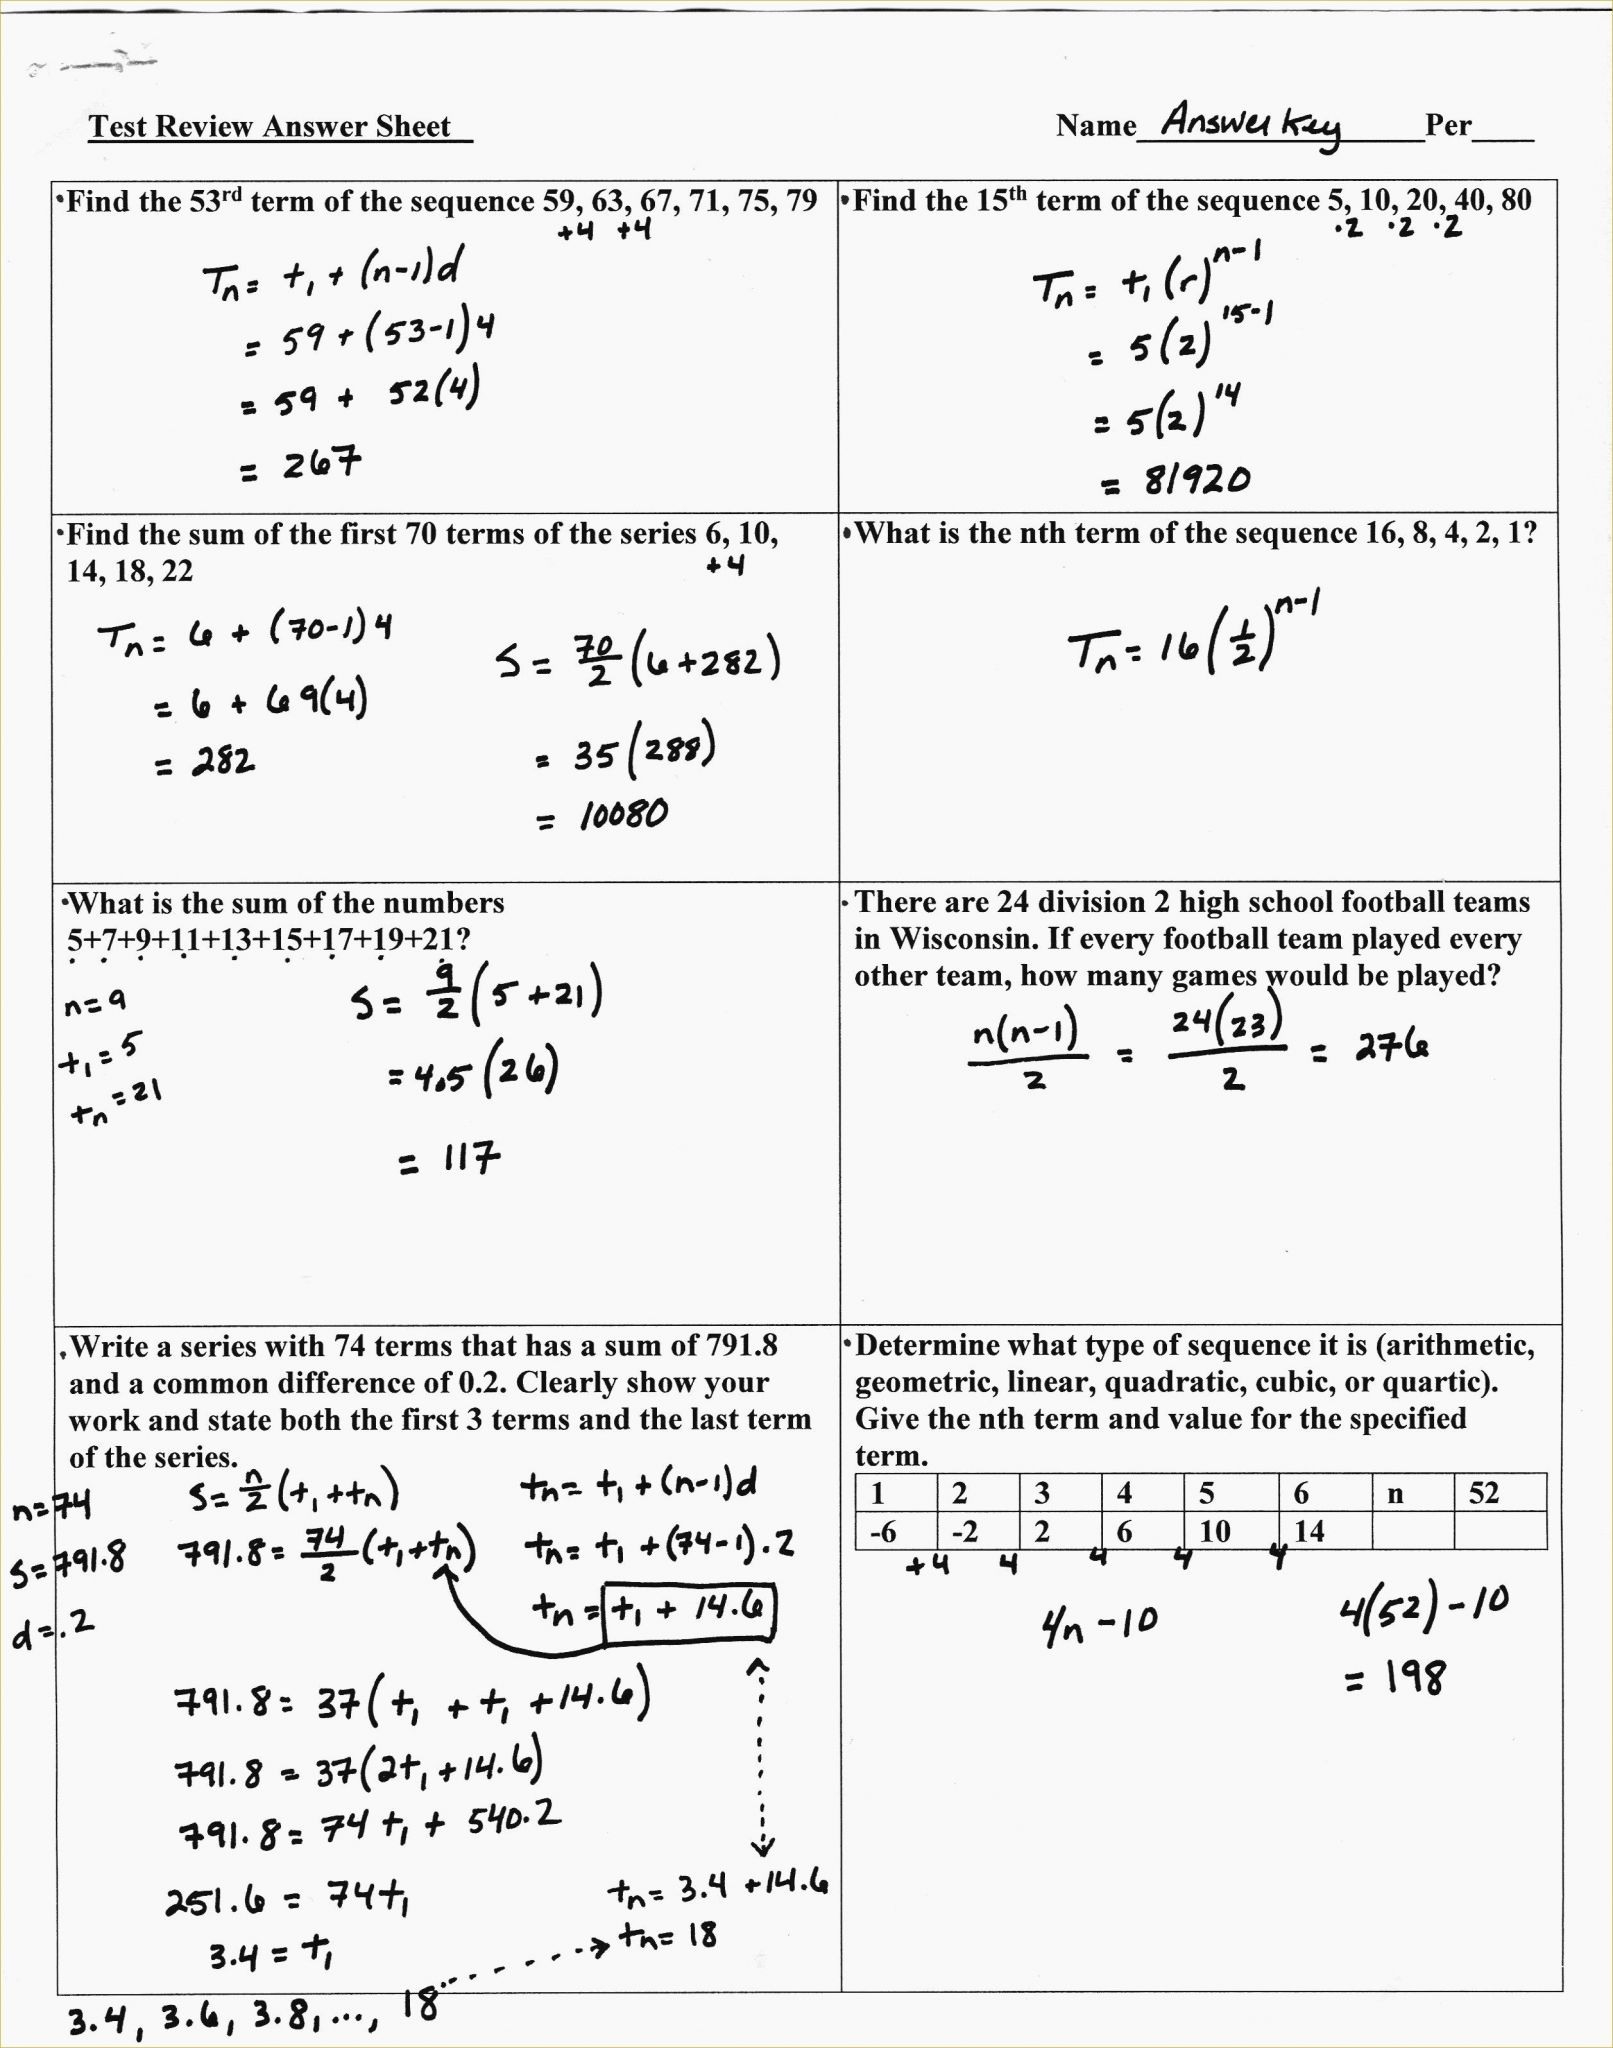 Arithmetic Sequence Practice Worksheet   db excel.com